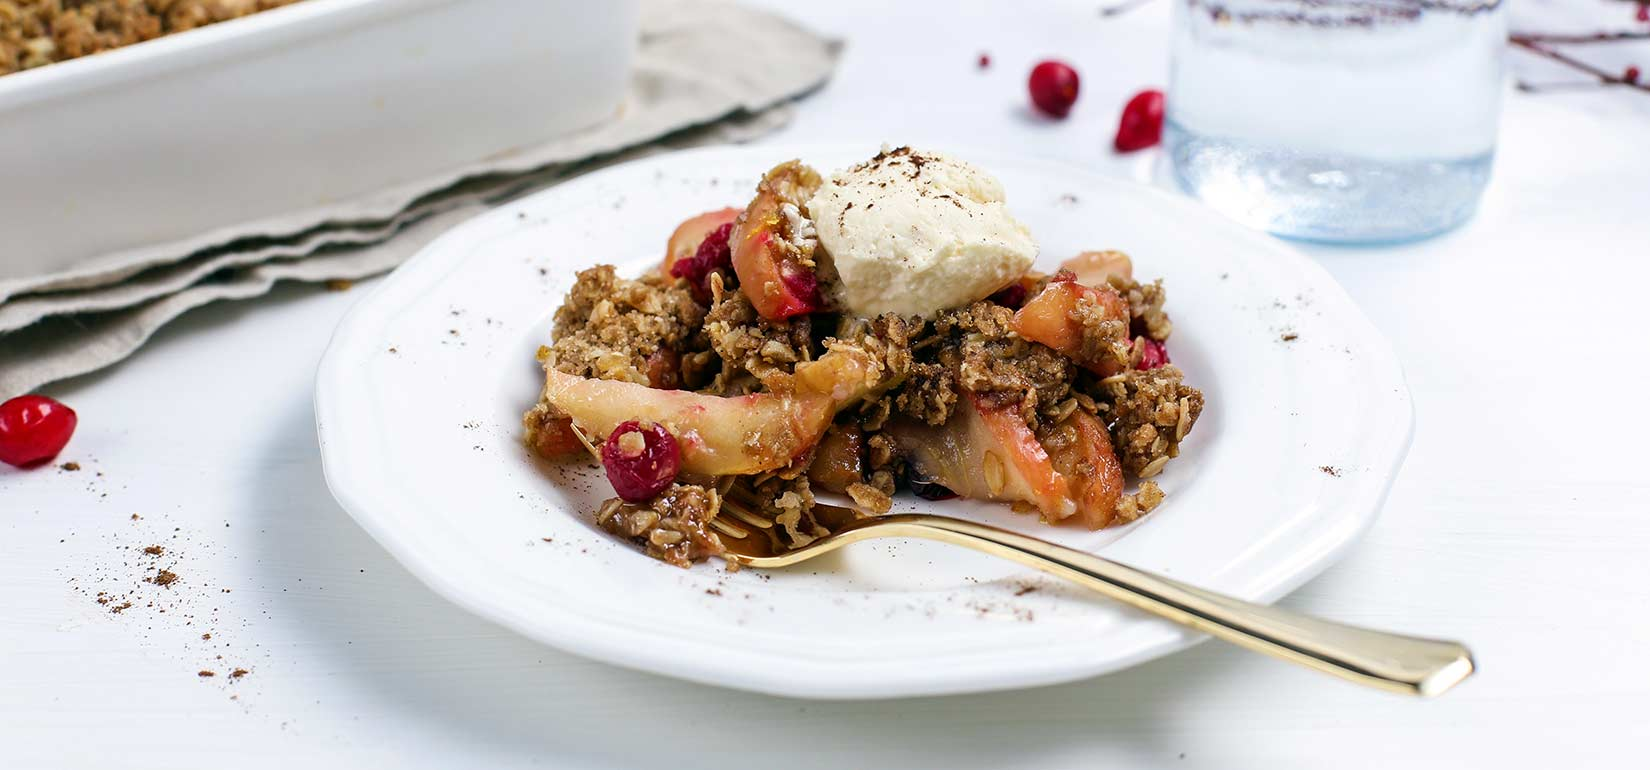 Simply Organic Holiday Organic Allspice Apple Cranberry Crisp Recipe